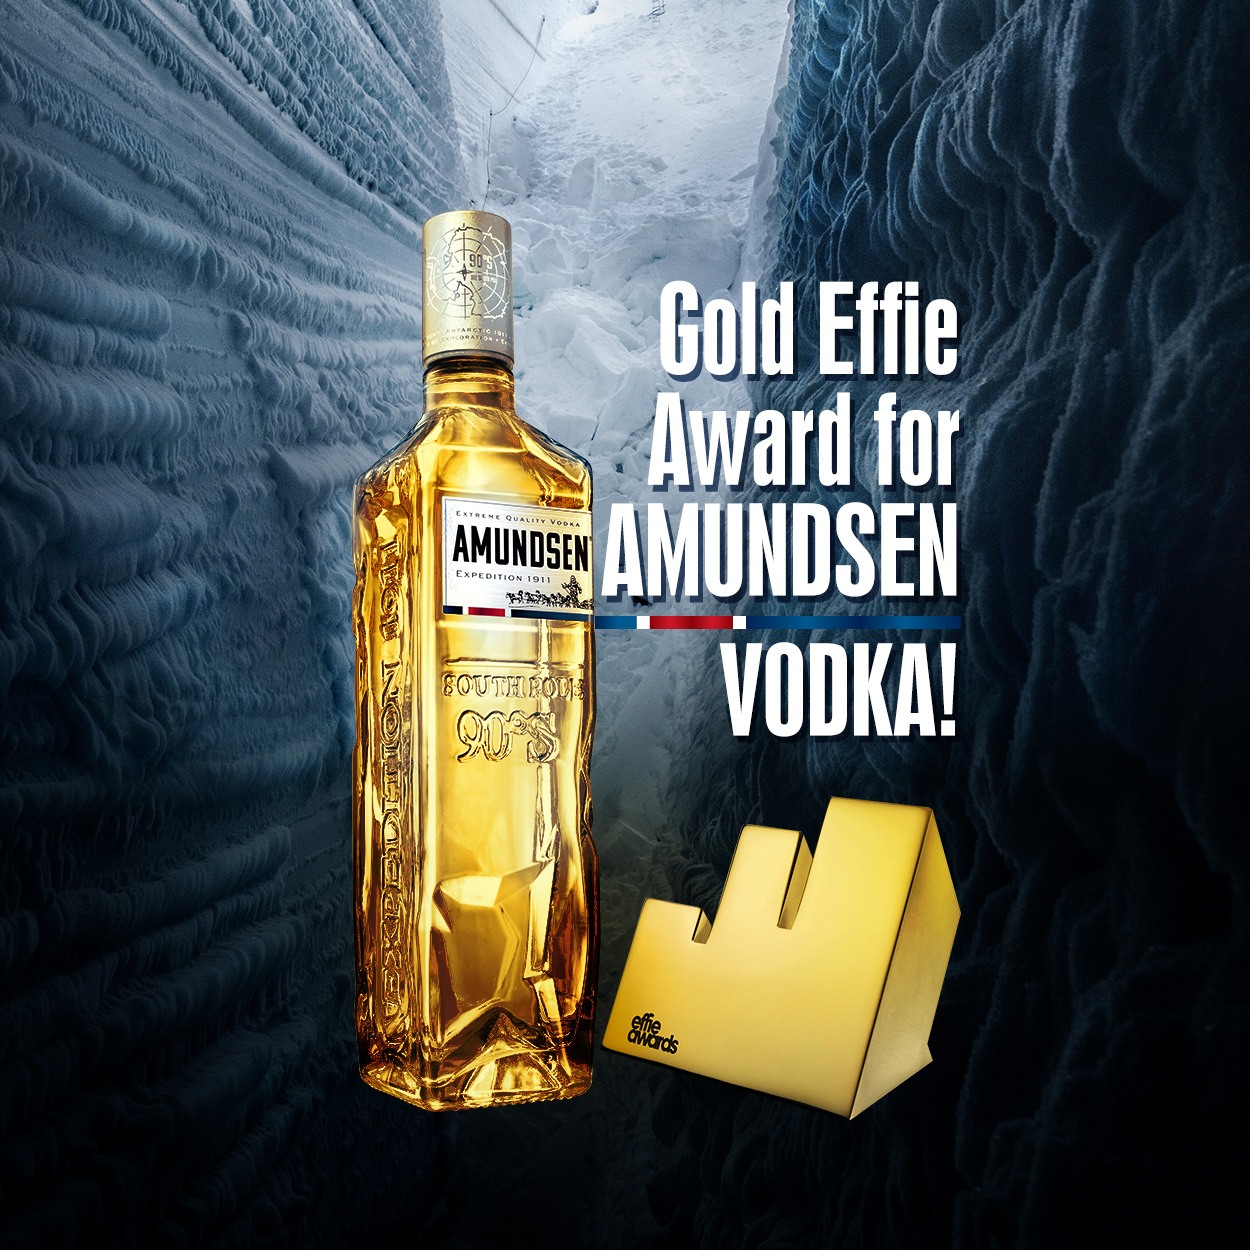 Stock Polska's Amundsen Vodka #Explore More! campaign wins gold in 2019 Effie Awards